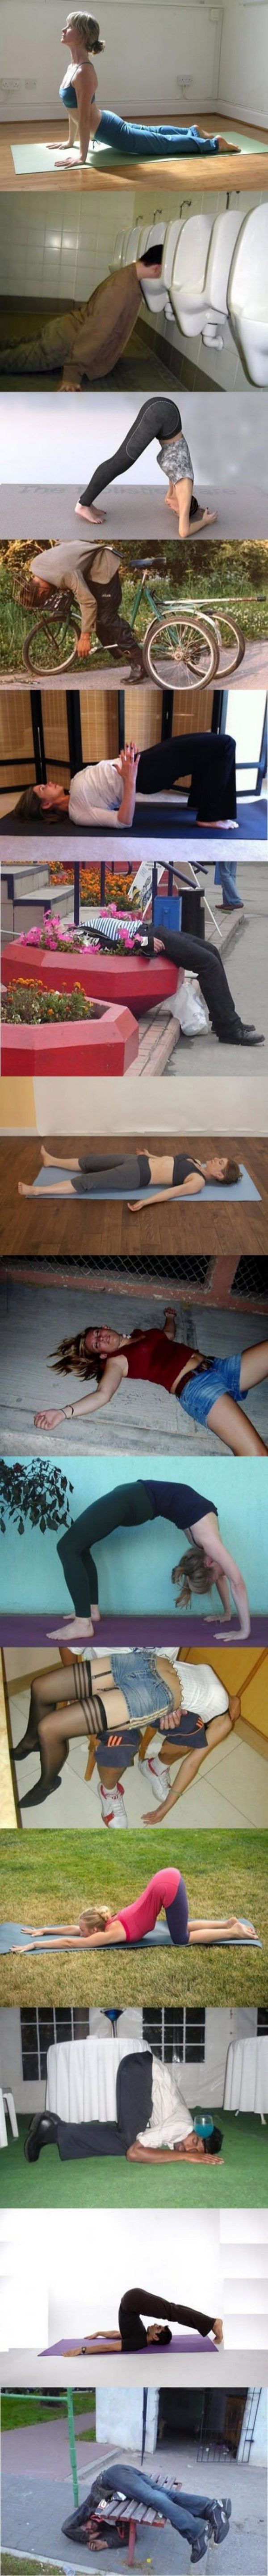 Yoga Sober and Drunk   - funny pictures #funnypictures